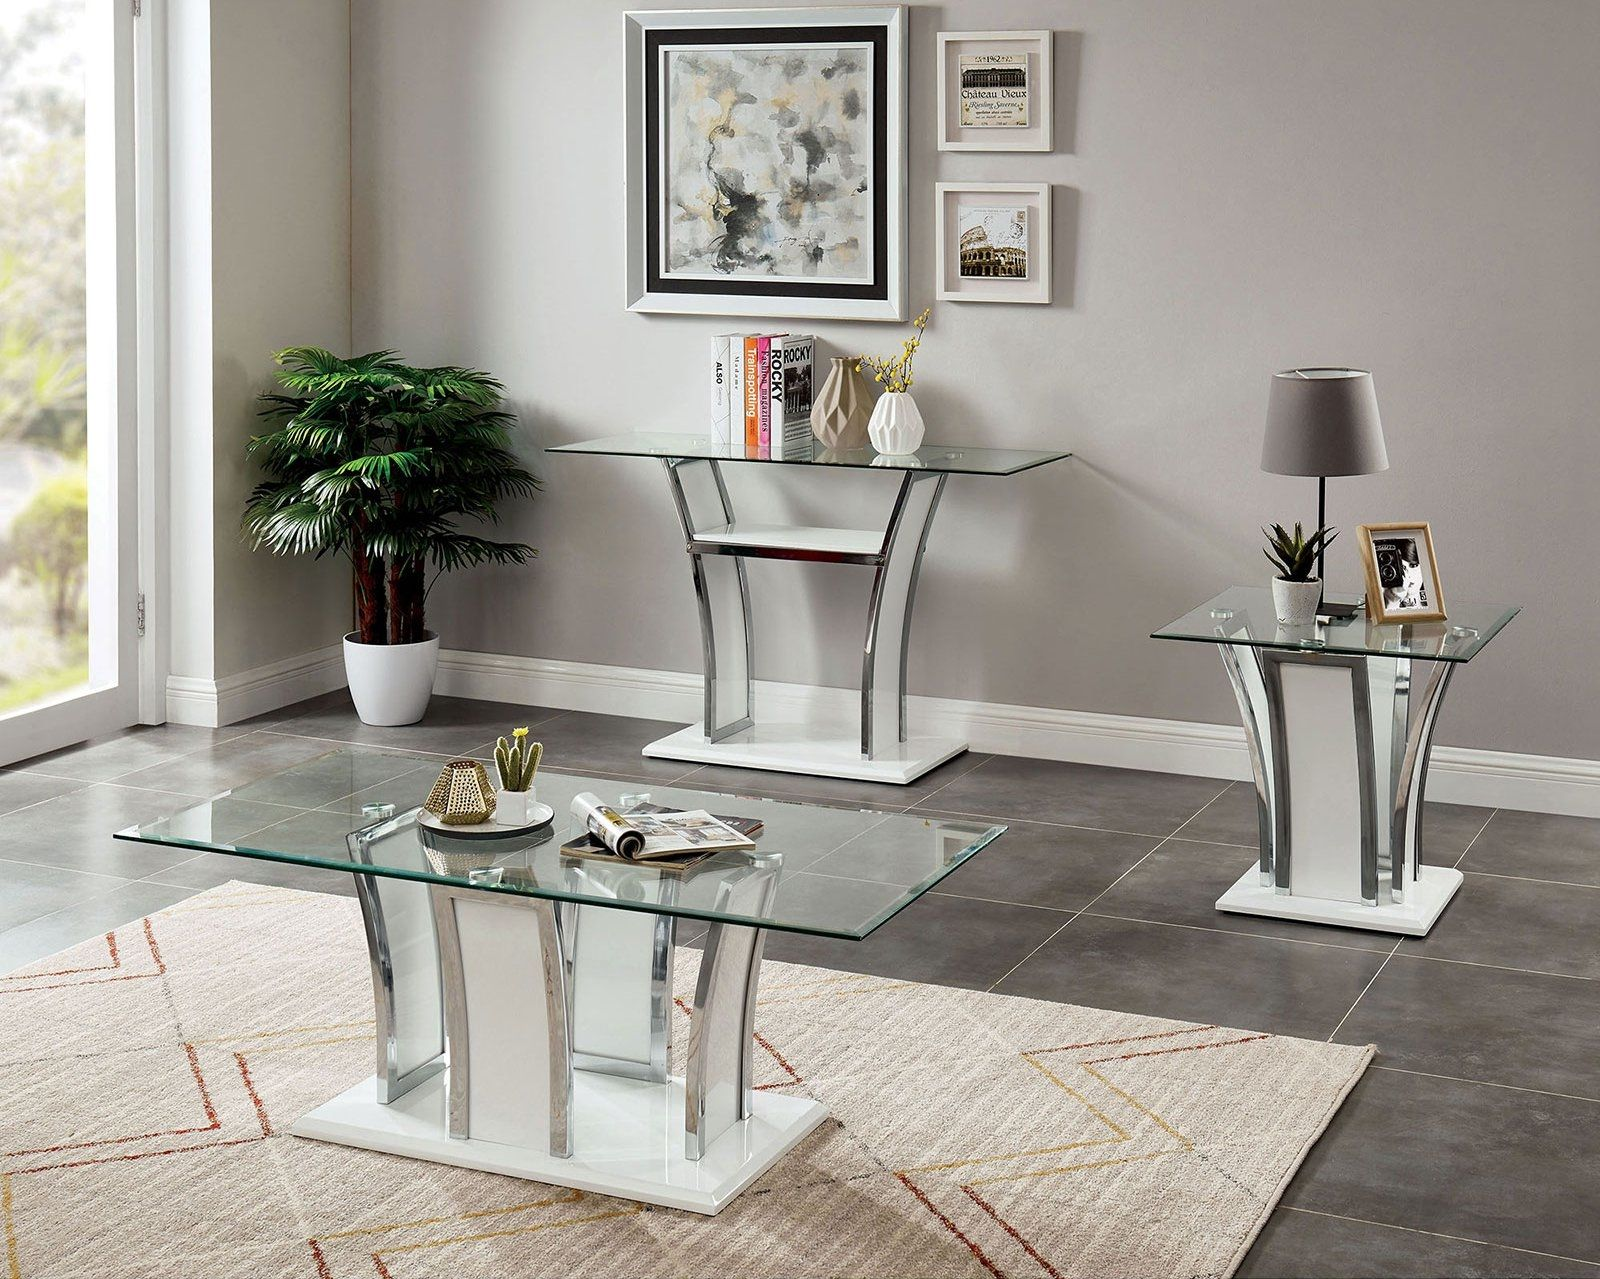 Staten White Coffee Table Cm4372wh C Furniture Of America Coffee Tables Coffee Table Metal Dining Table Accent Table Sets Living room coffee table set